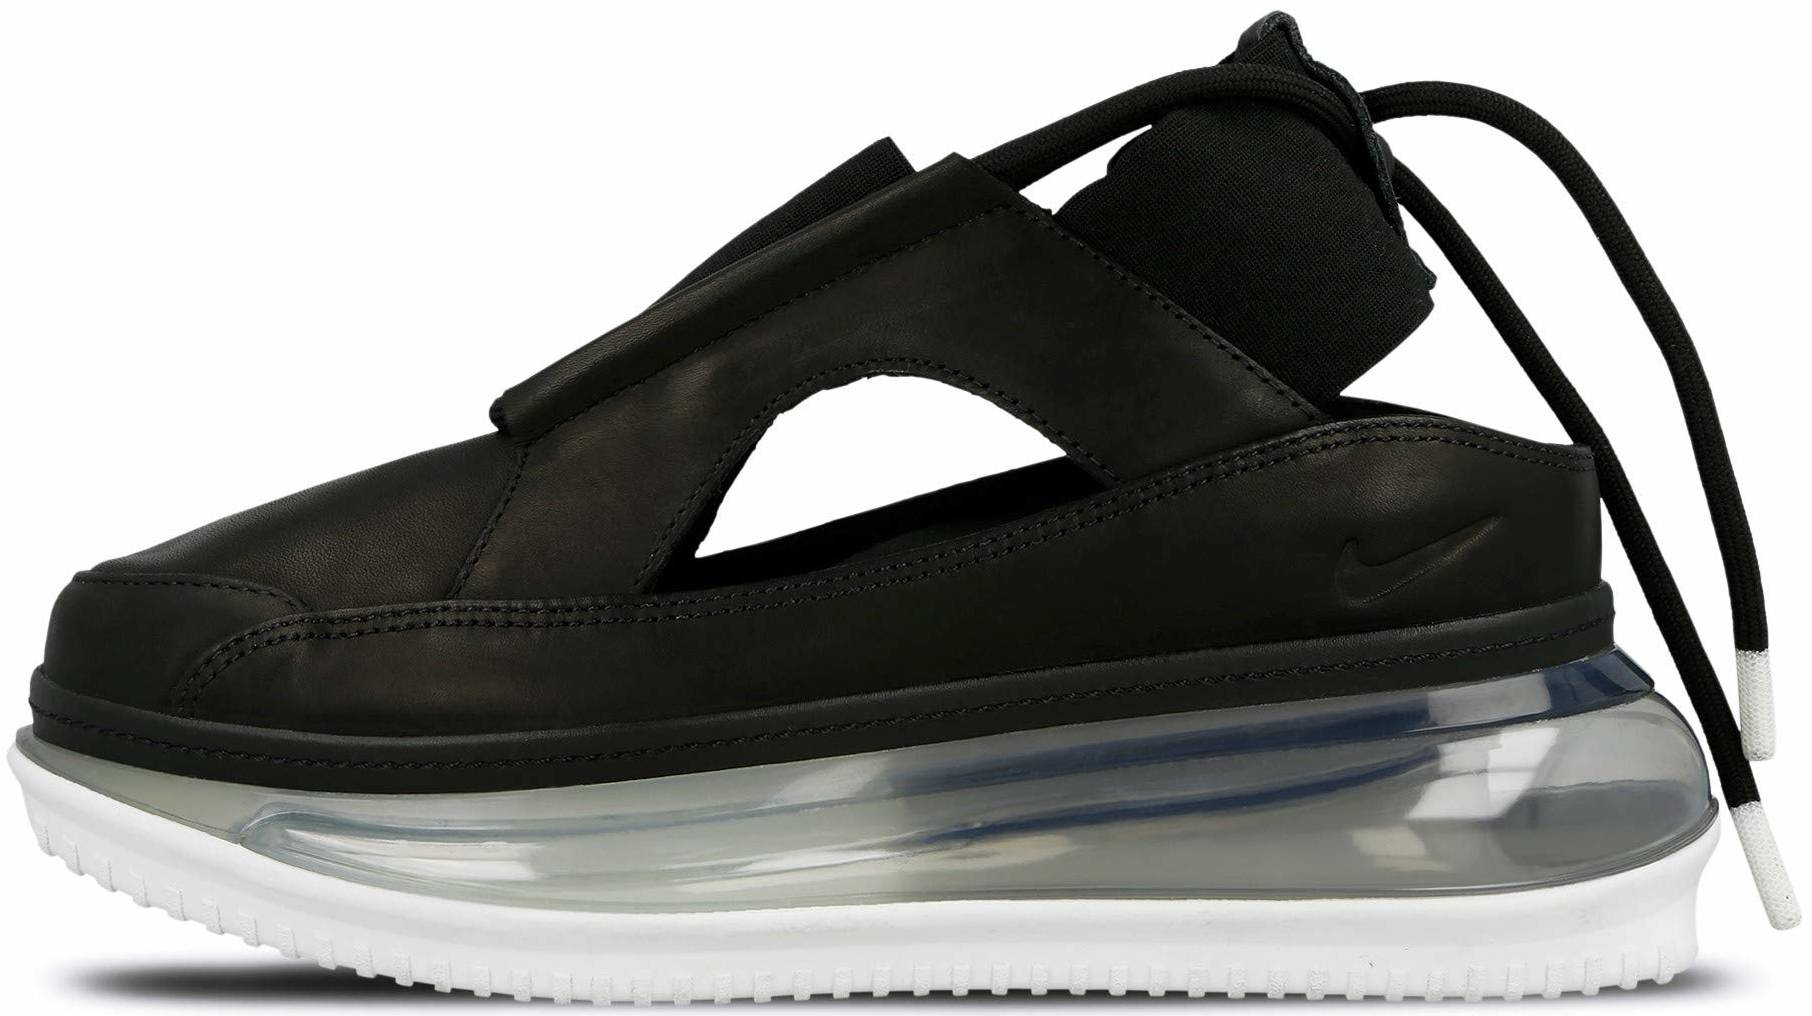 bosque Atrevimiento llevar a cabo  Nike Air Max FF 720 sneakers in black (only $160) | RunRepeat